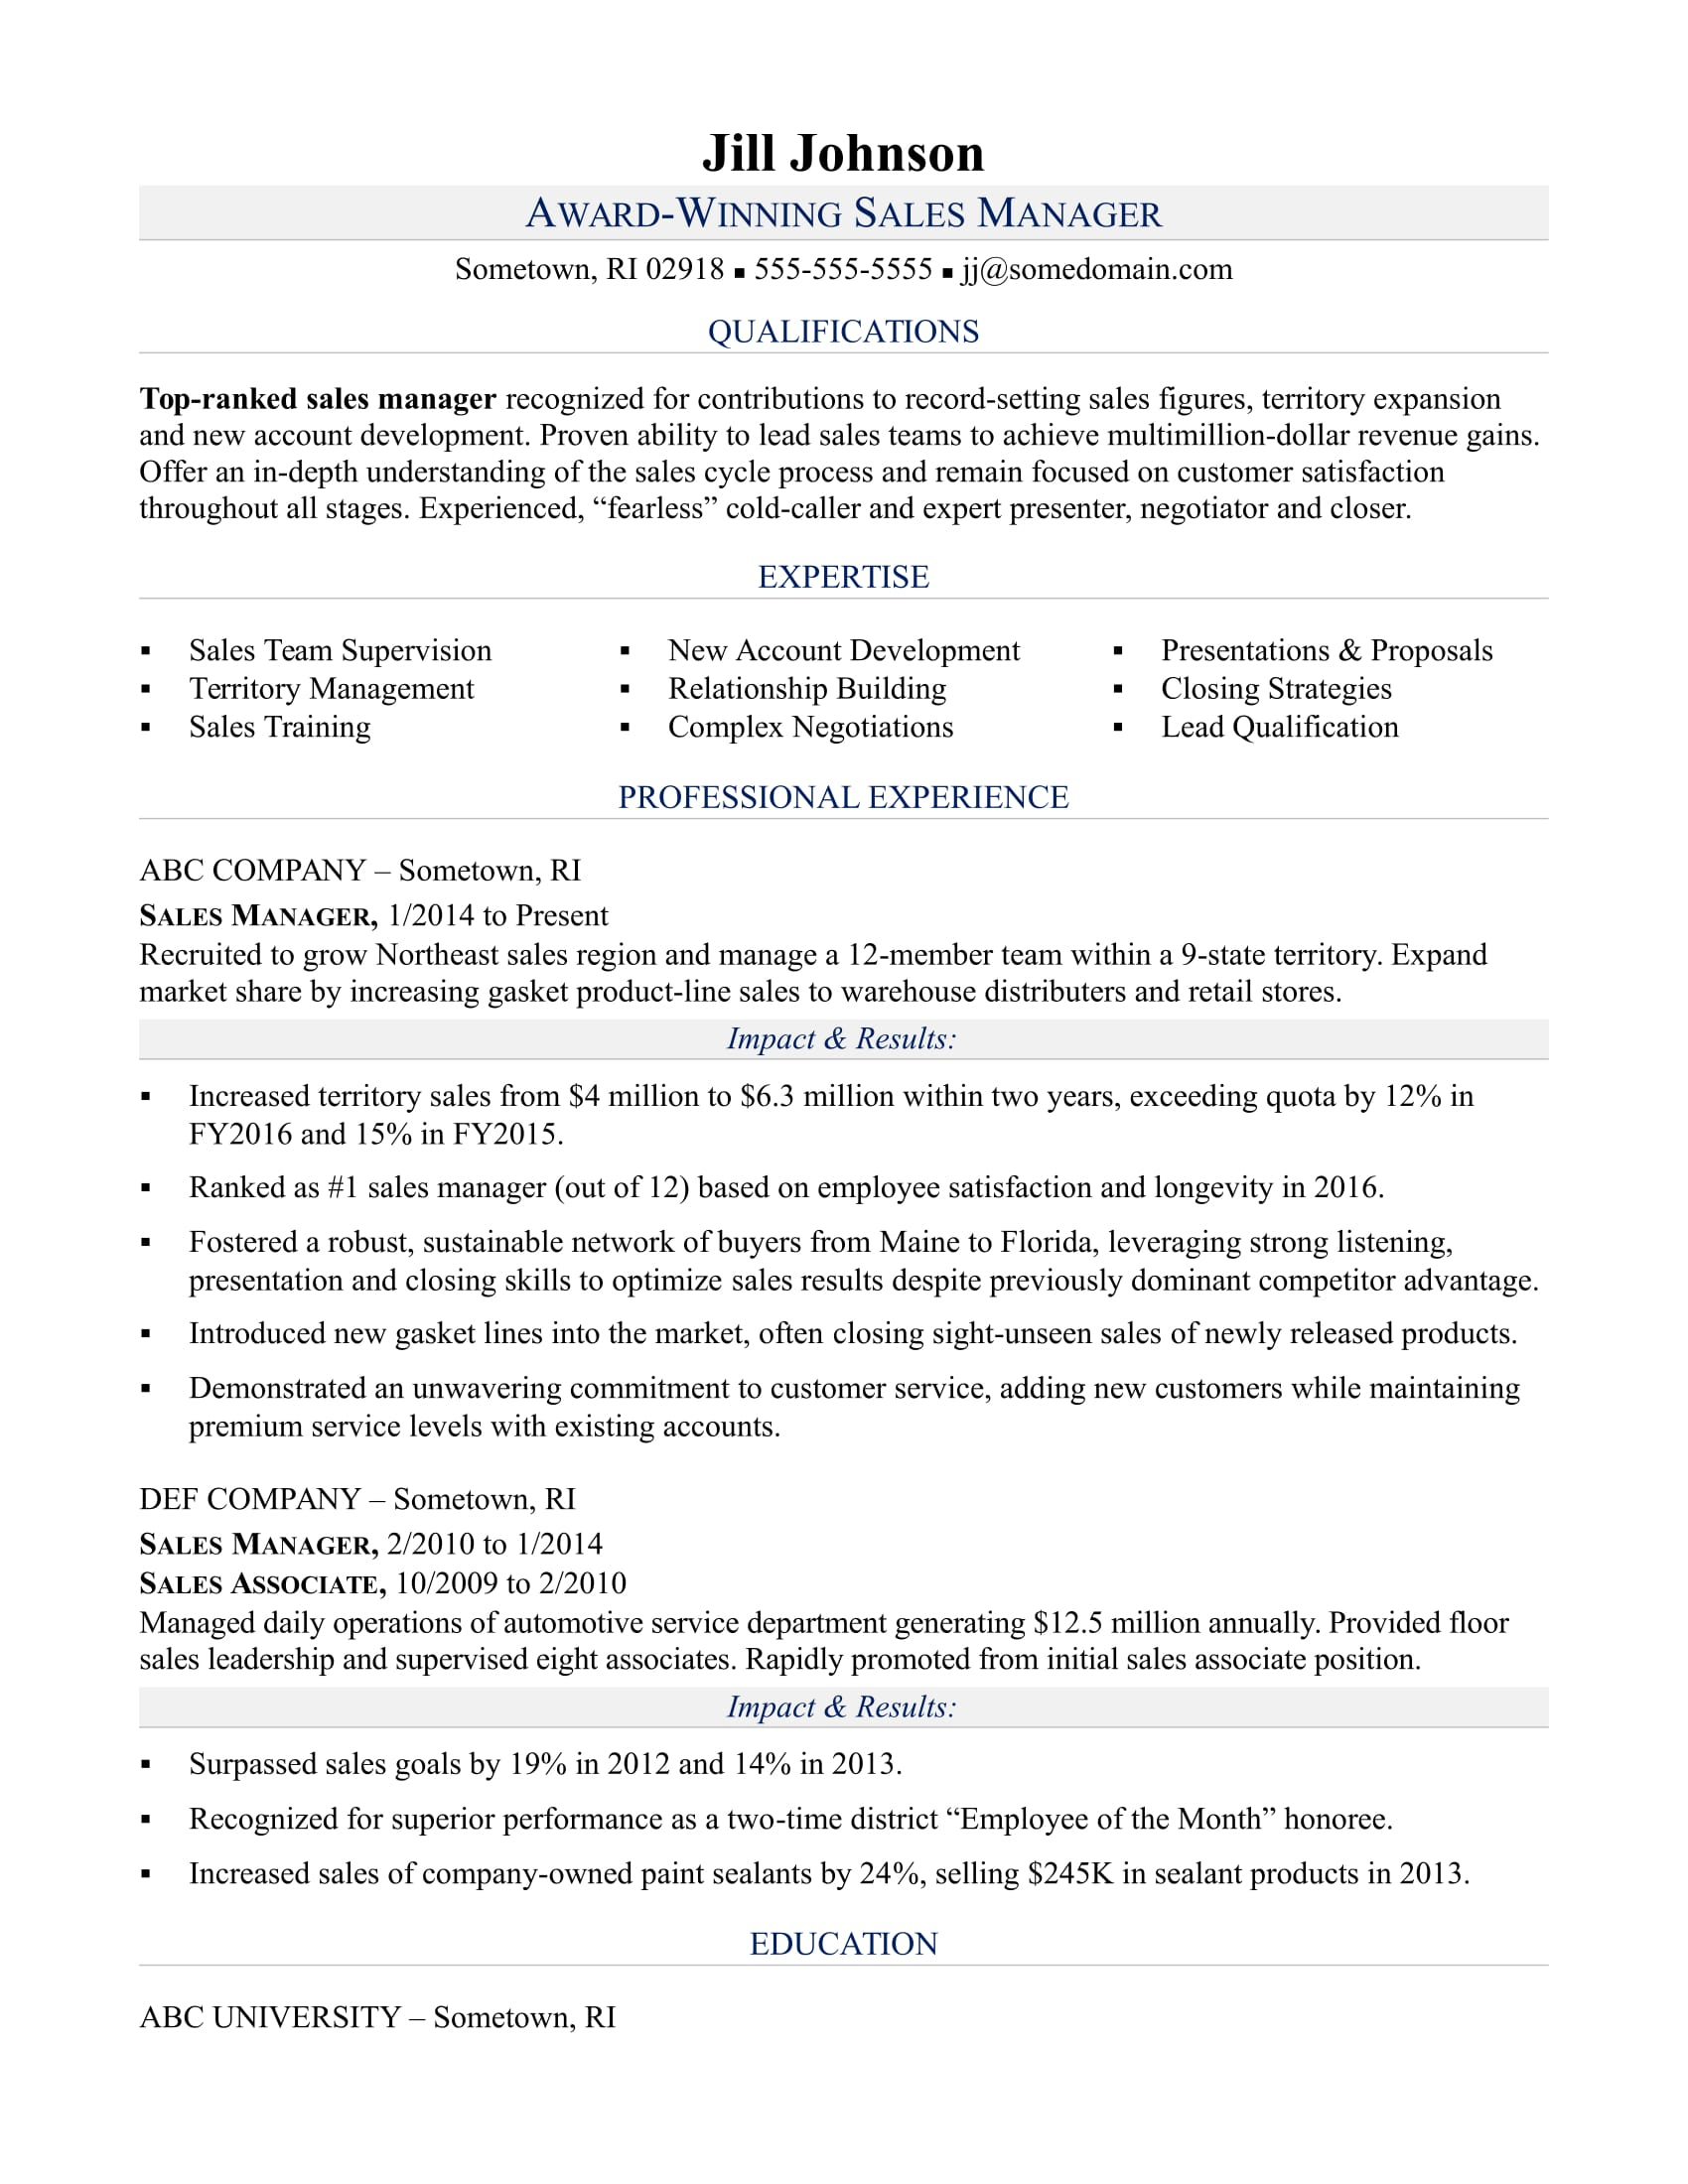 Sample Resume For A Sales Manager  Sales Customer Service Resume